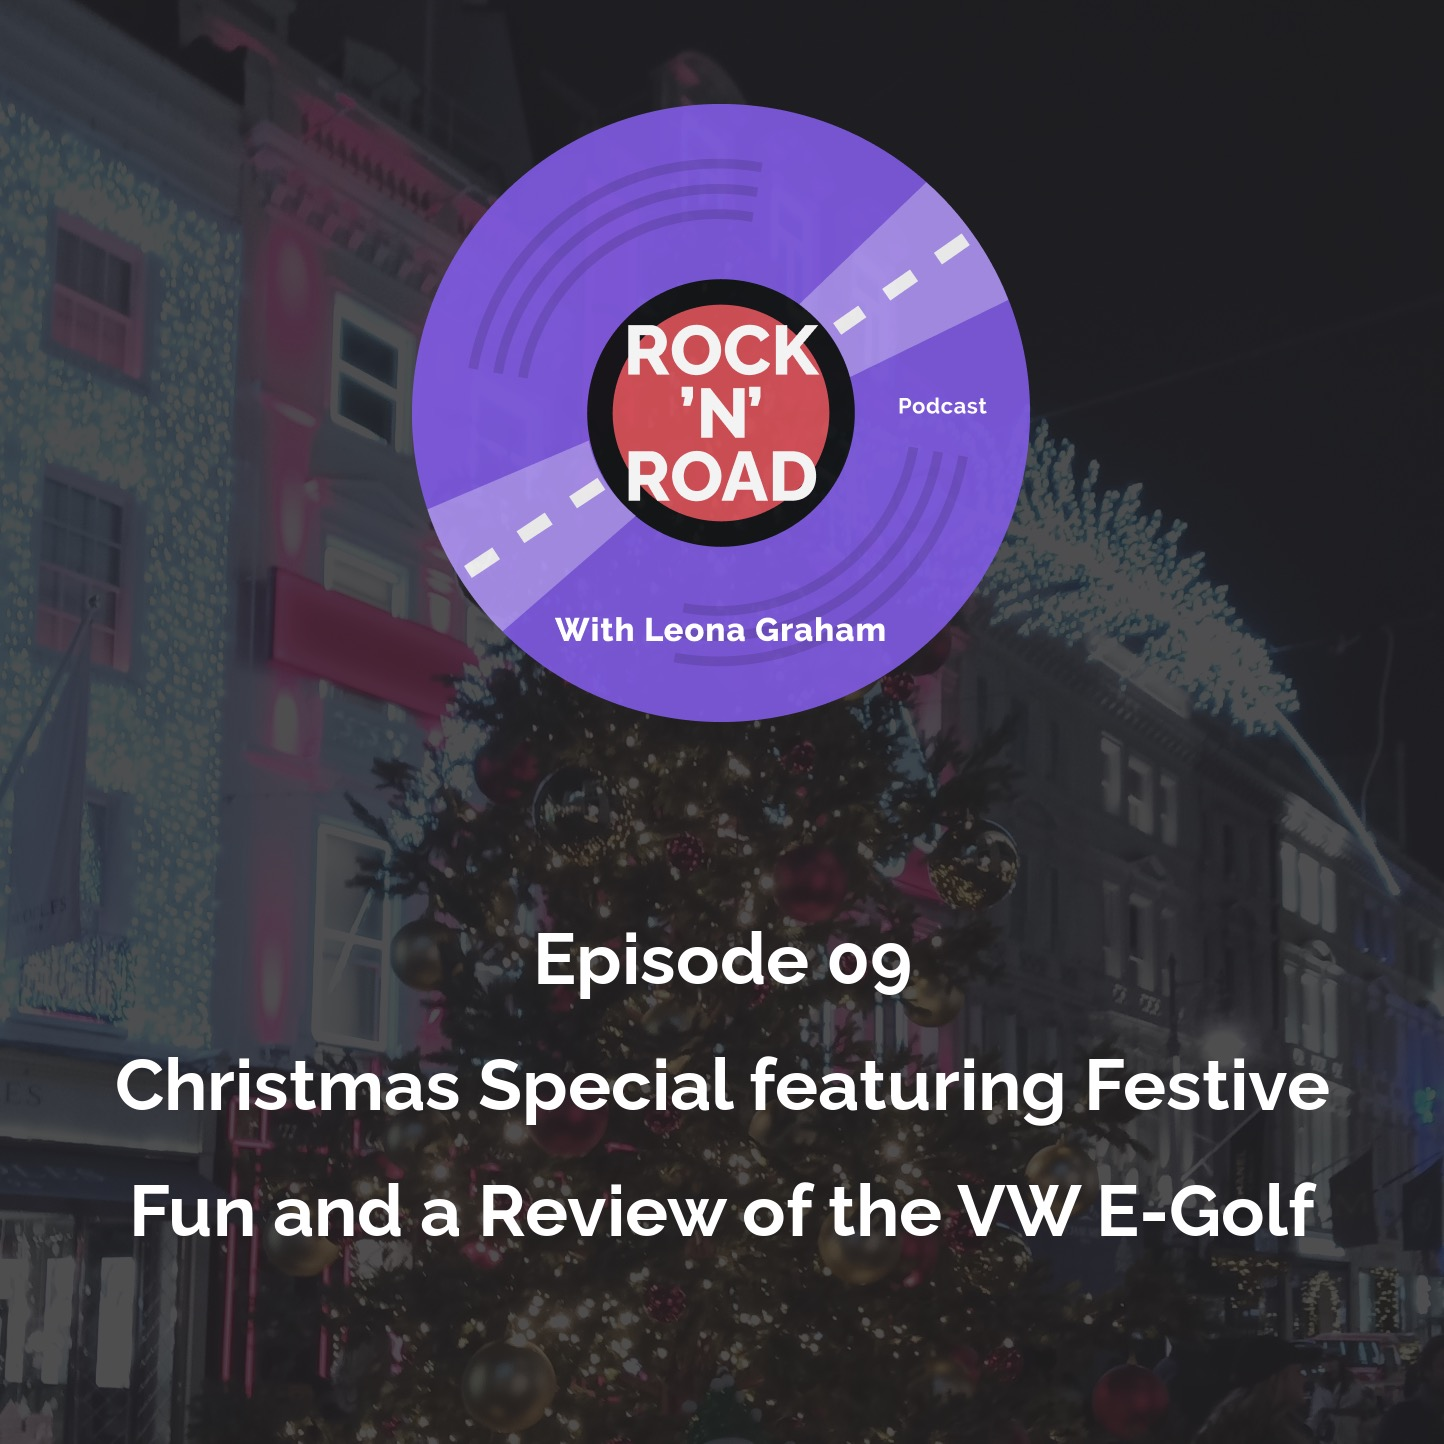 Episode 09: Christmas Special featuring Festive Fun and a Review of the VW E-Golf